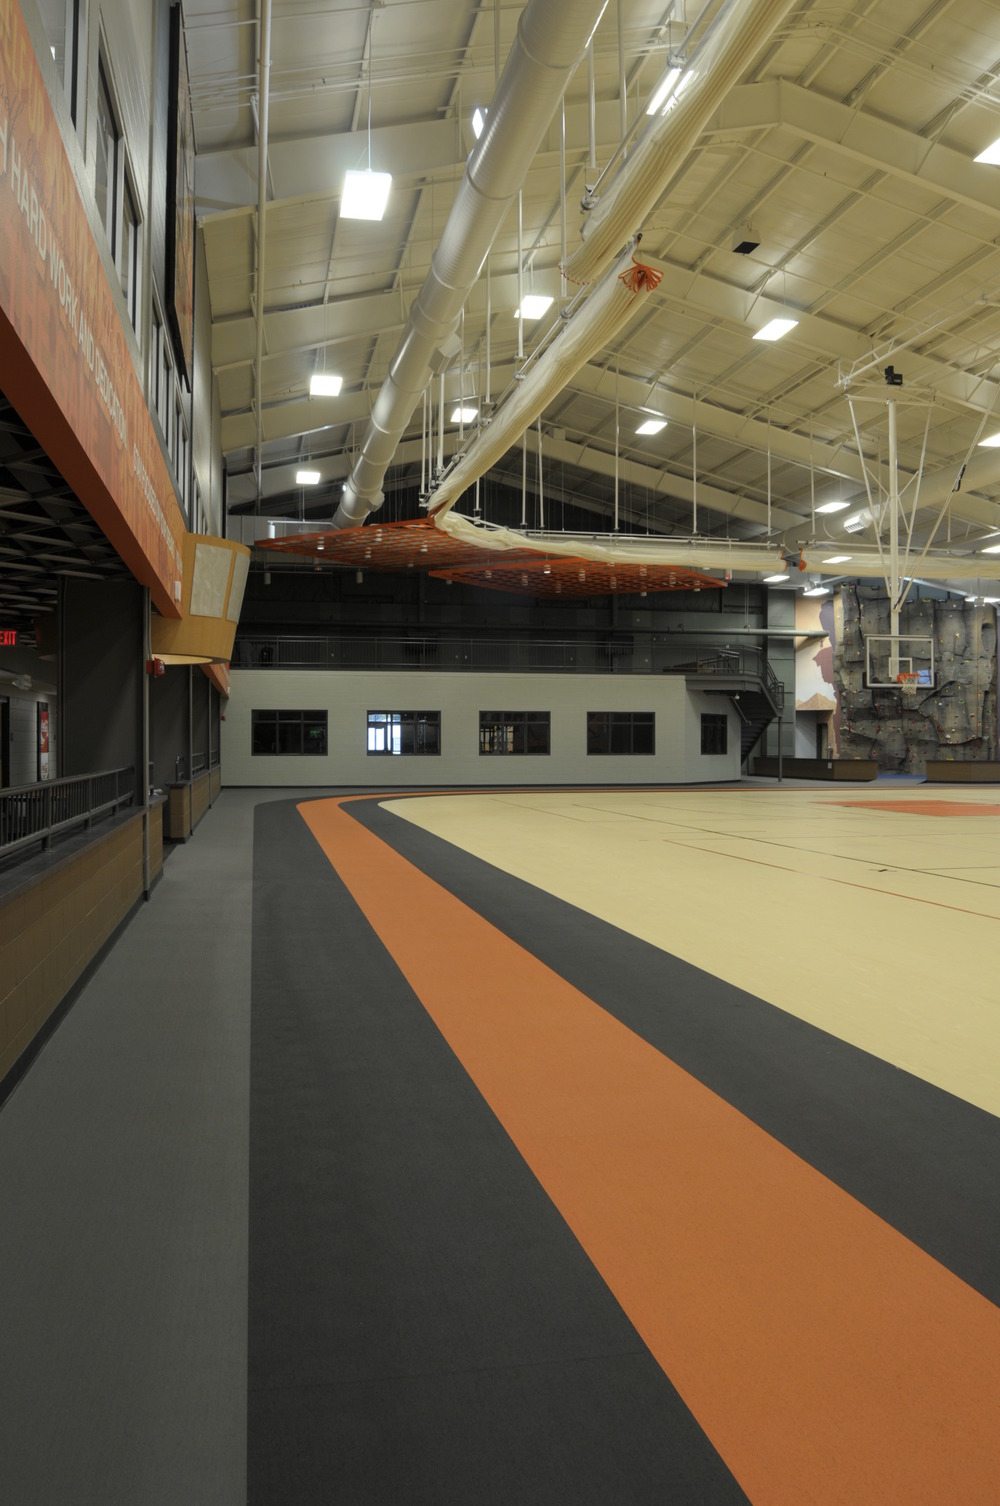 www.rcmarchitects.com - university of findlay - recreation center (1)